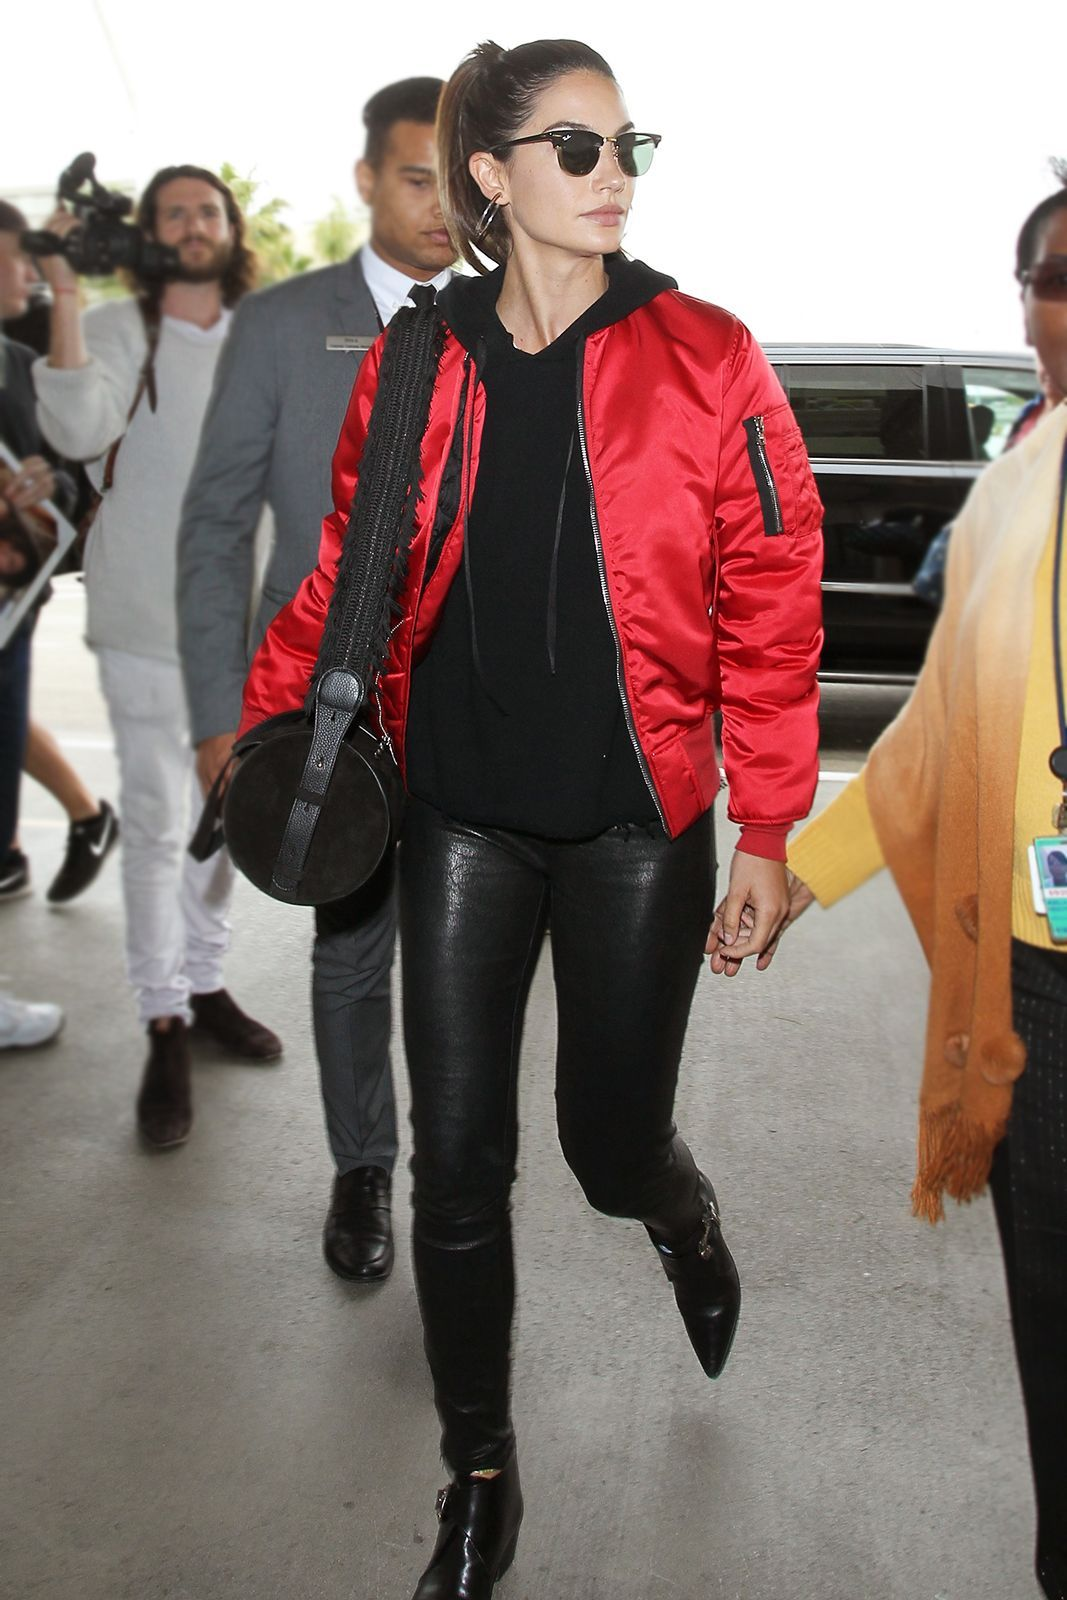 18 Celebs Remind Us That Leggings Are Pants Red Bomber Jacket Red Bomber Jacket Outfit Bomber Jacket [ 1600 x 1067 Pixel ]